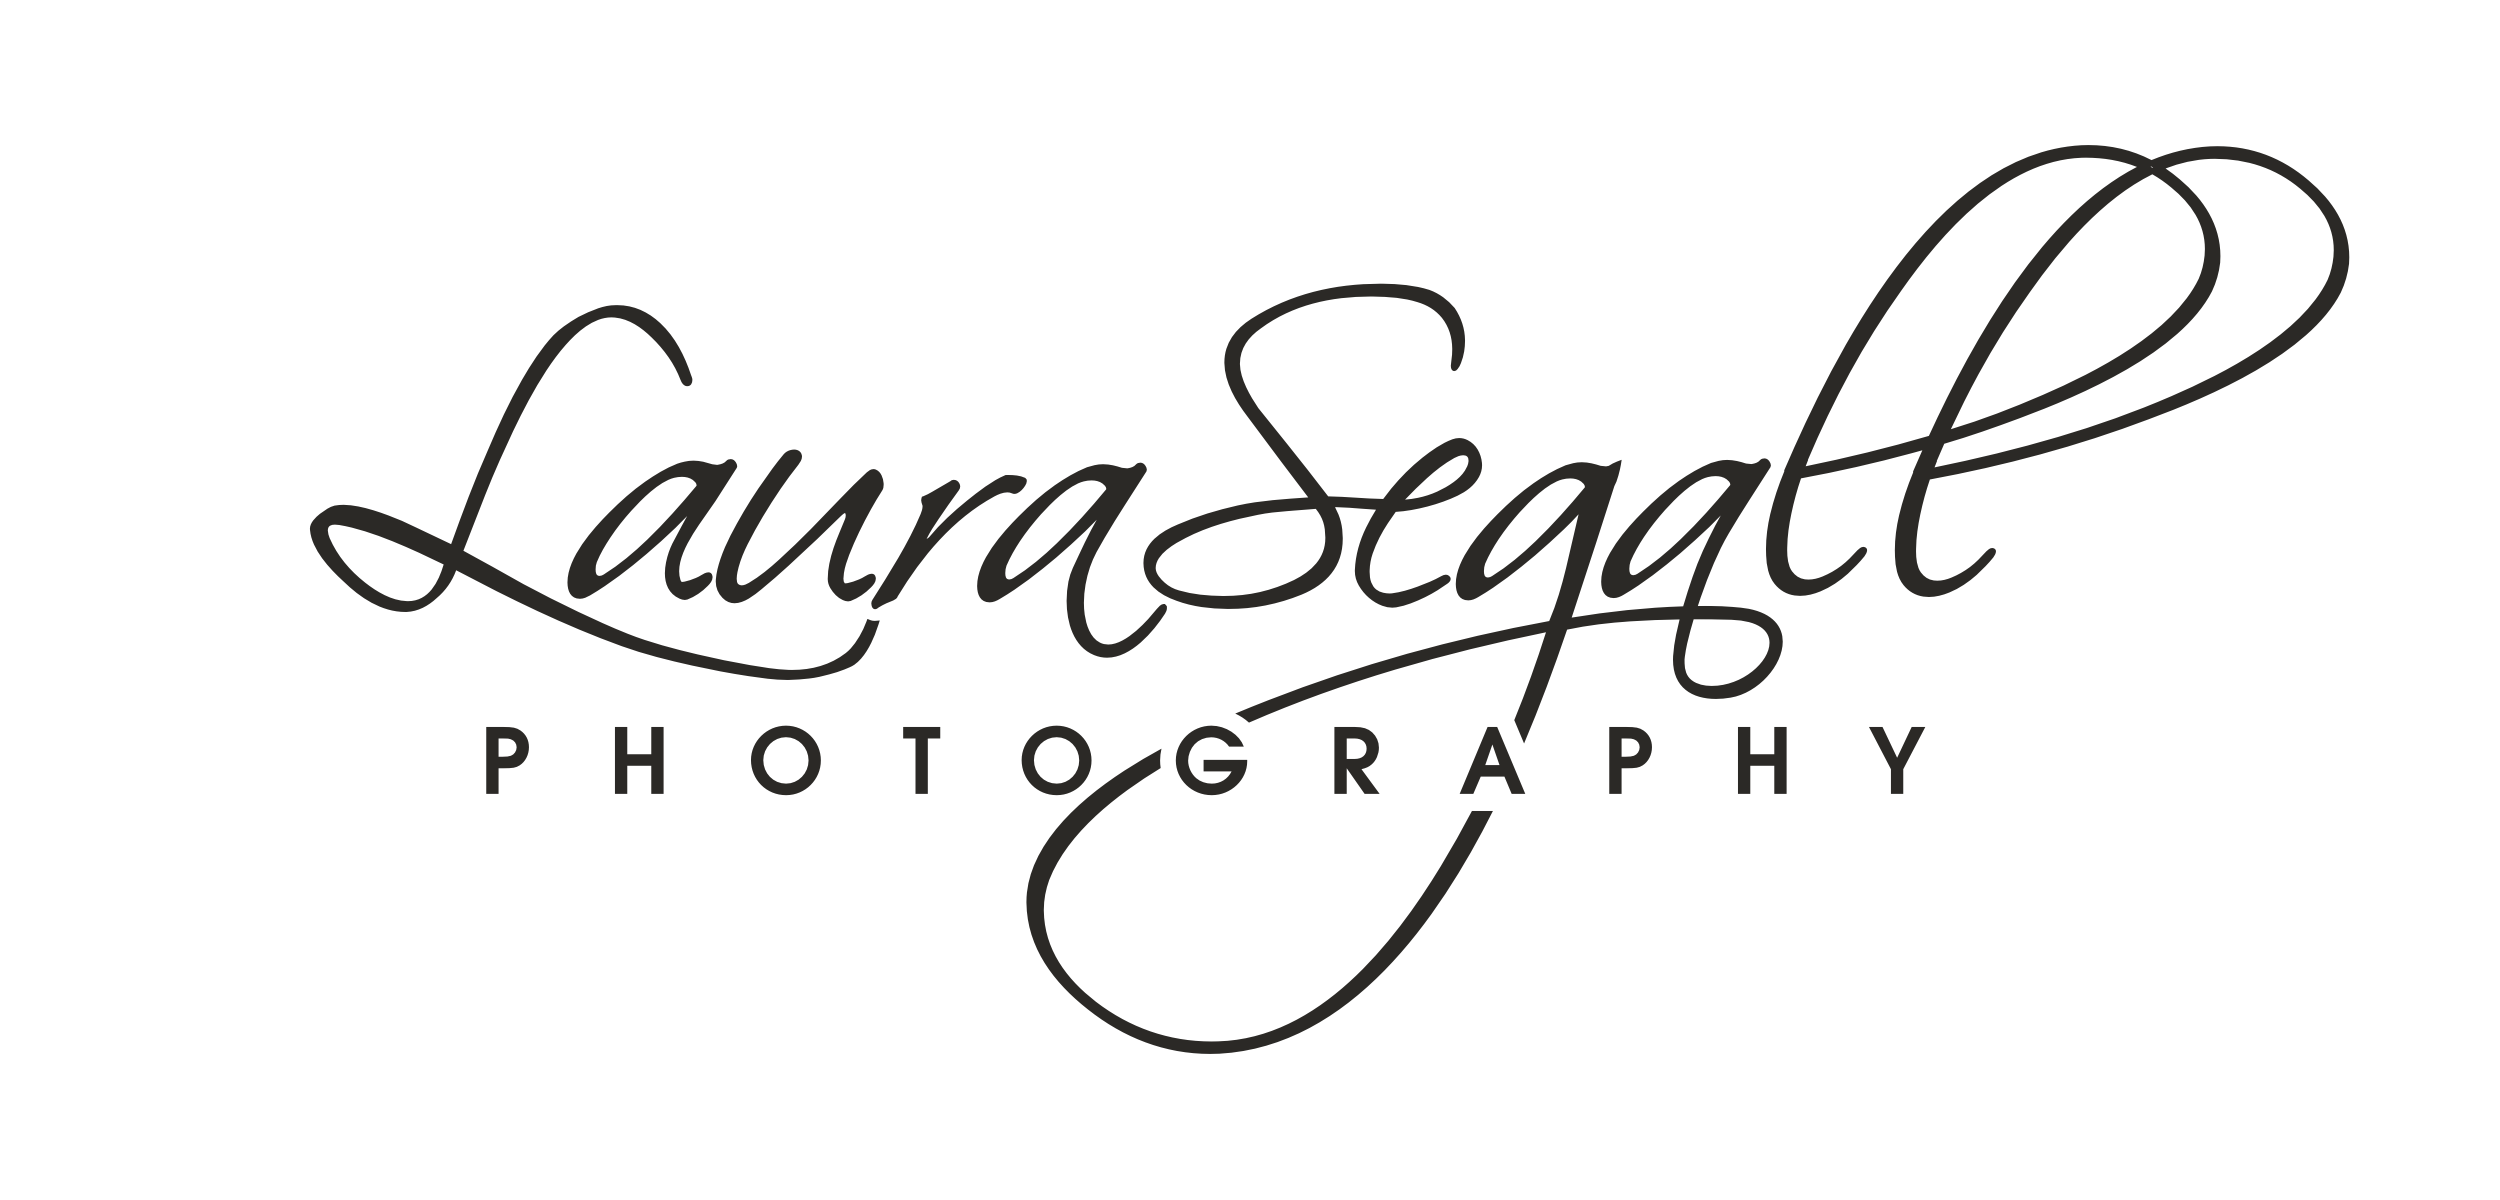 Laura Segall Photography